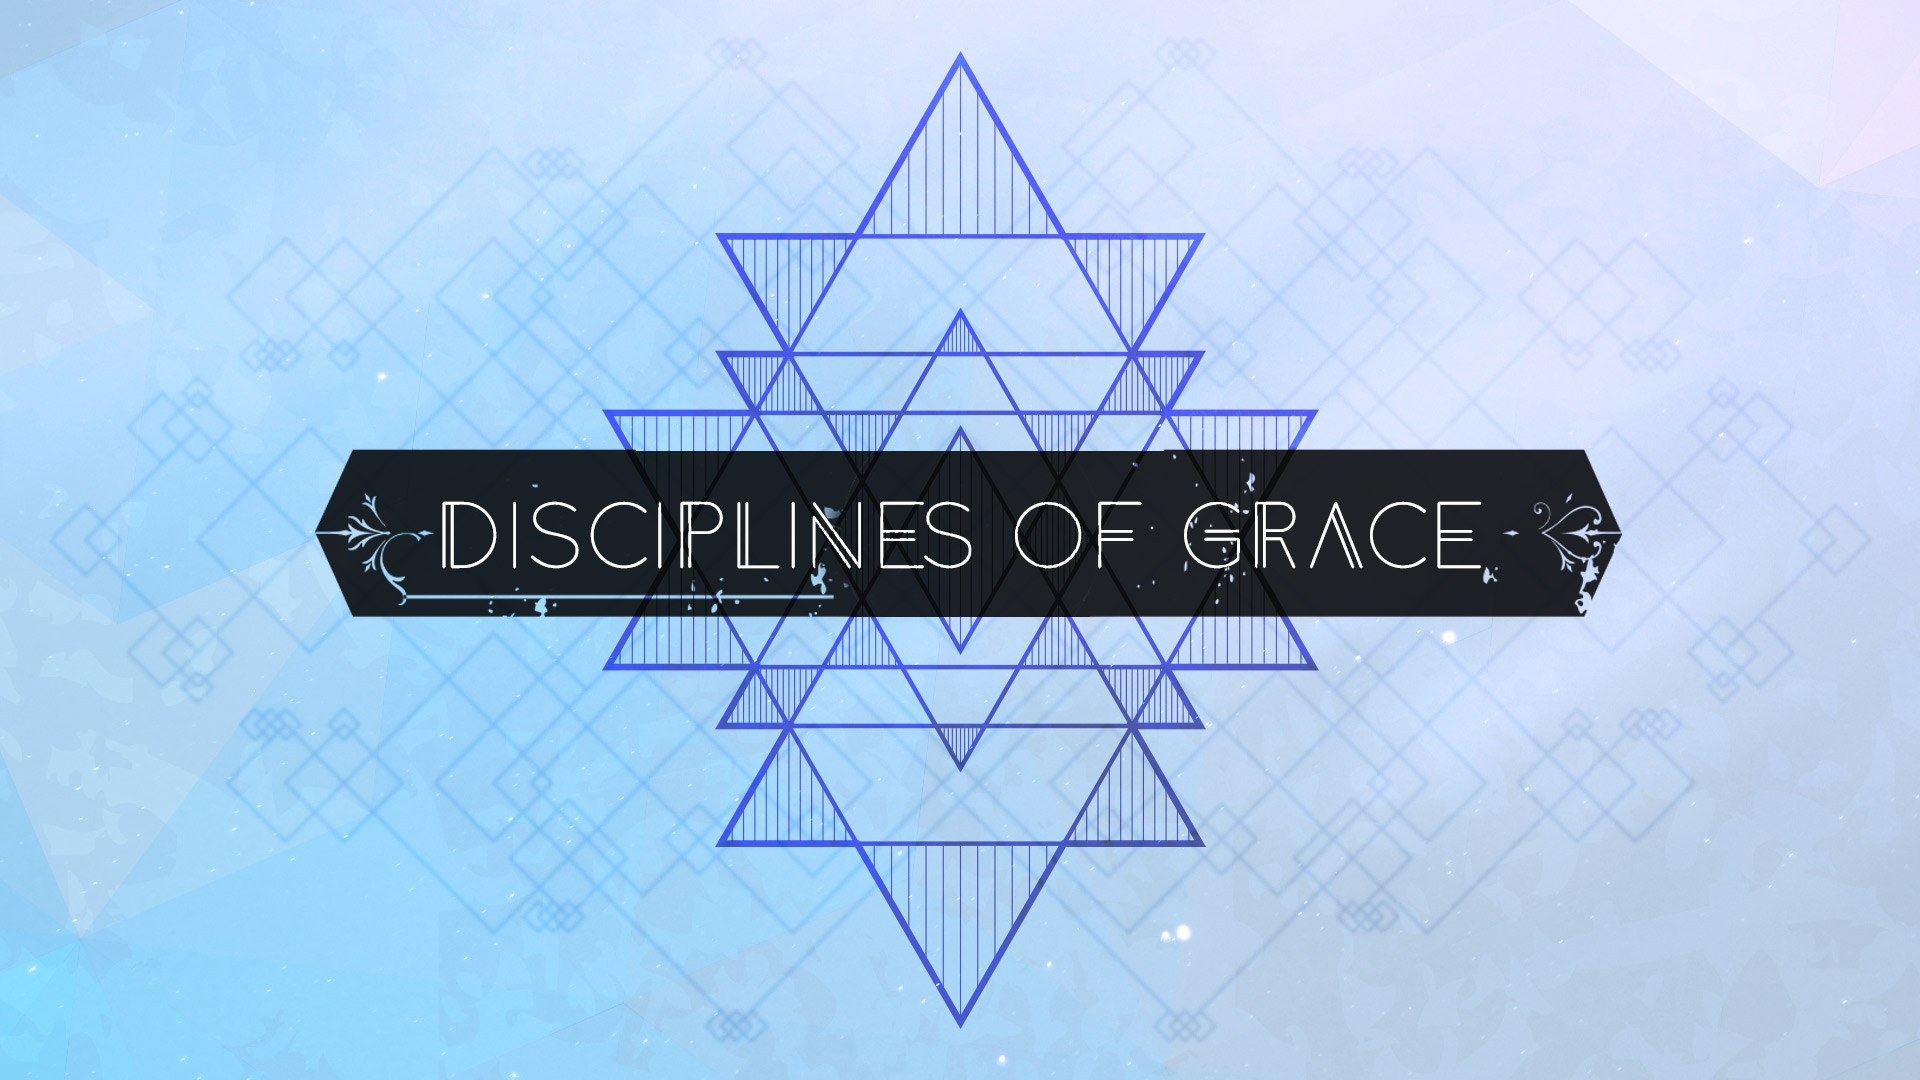 View all sermons in Disciplines of Grace